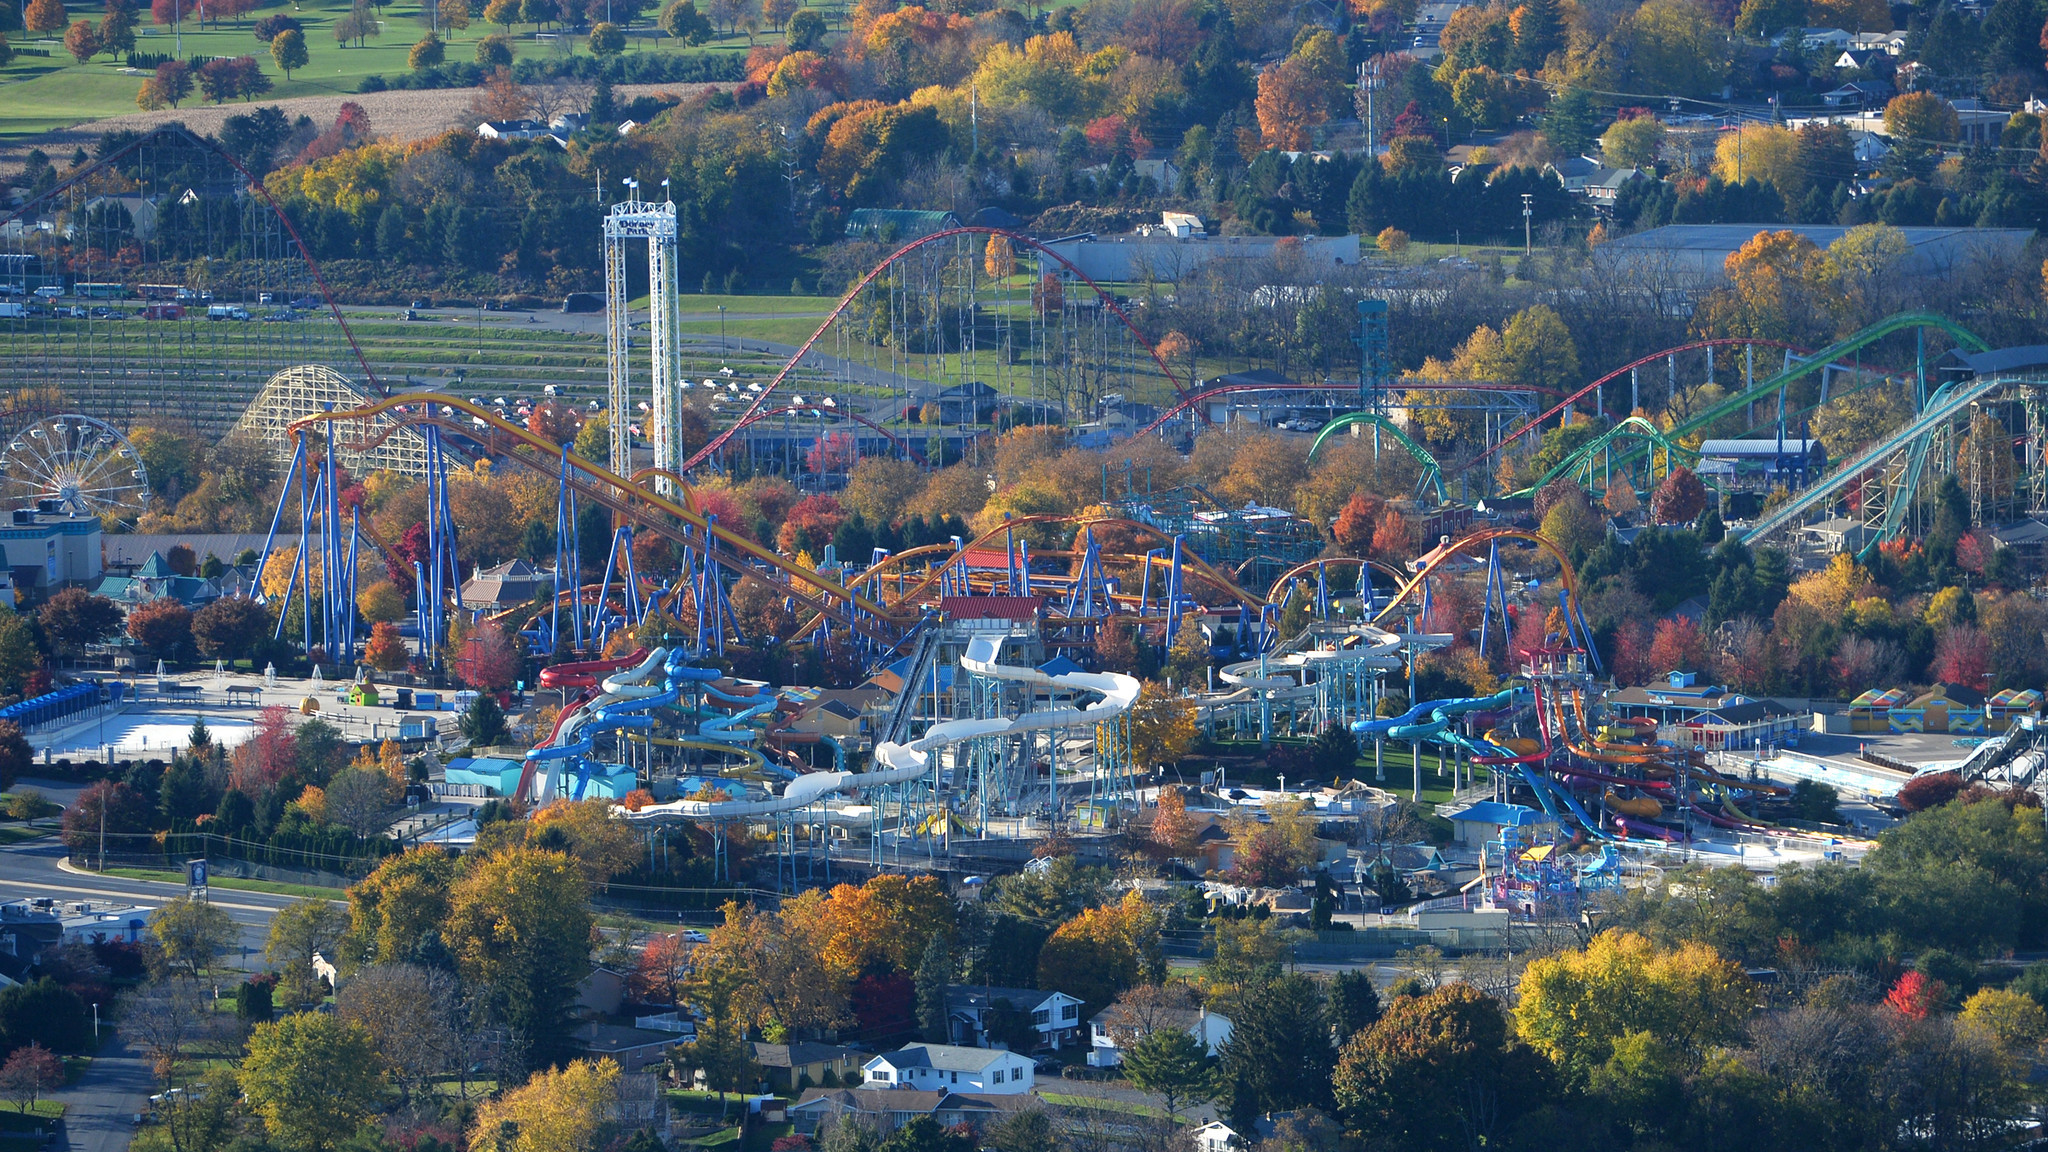 Dorney Park #AmazingLooksLike more than rides, shows & attractions and the perfect combination of thrills and family fun. indianheadprimefavor.tk